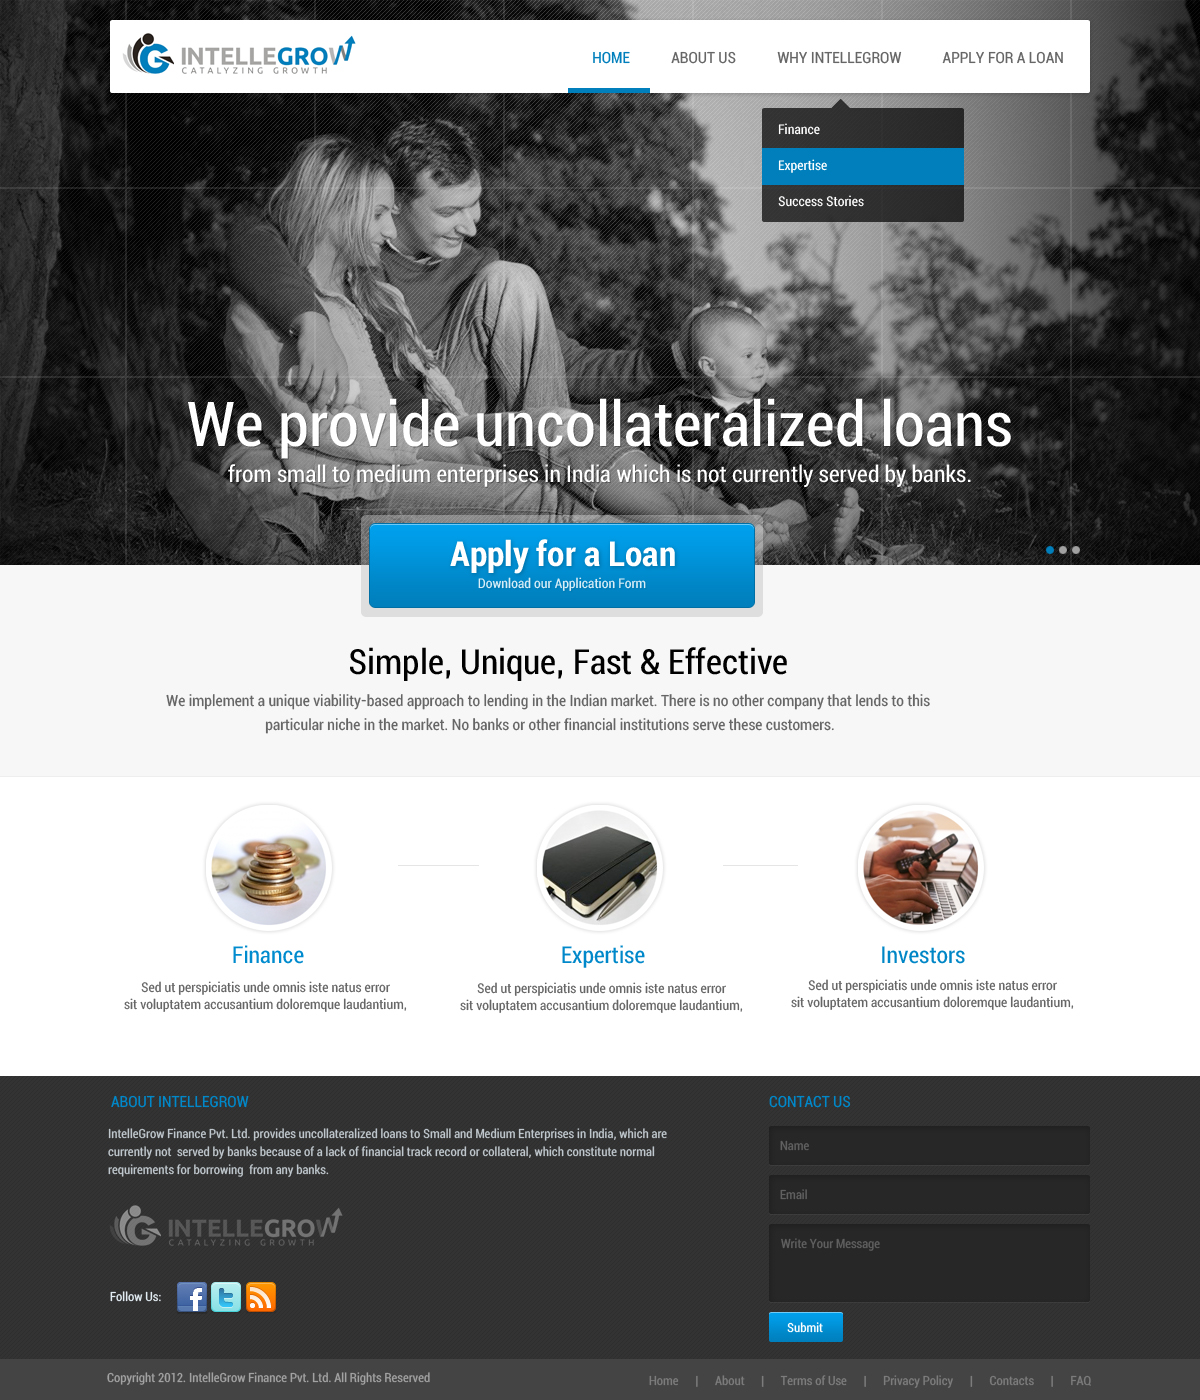 Web Page Design by themesmile - Entry No. 29 in the Web Page Design Contest IntelleGrow Finance Web Page Design.